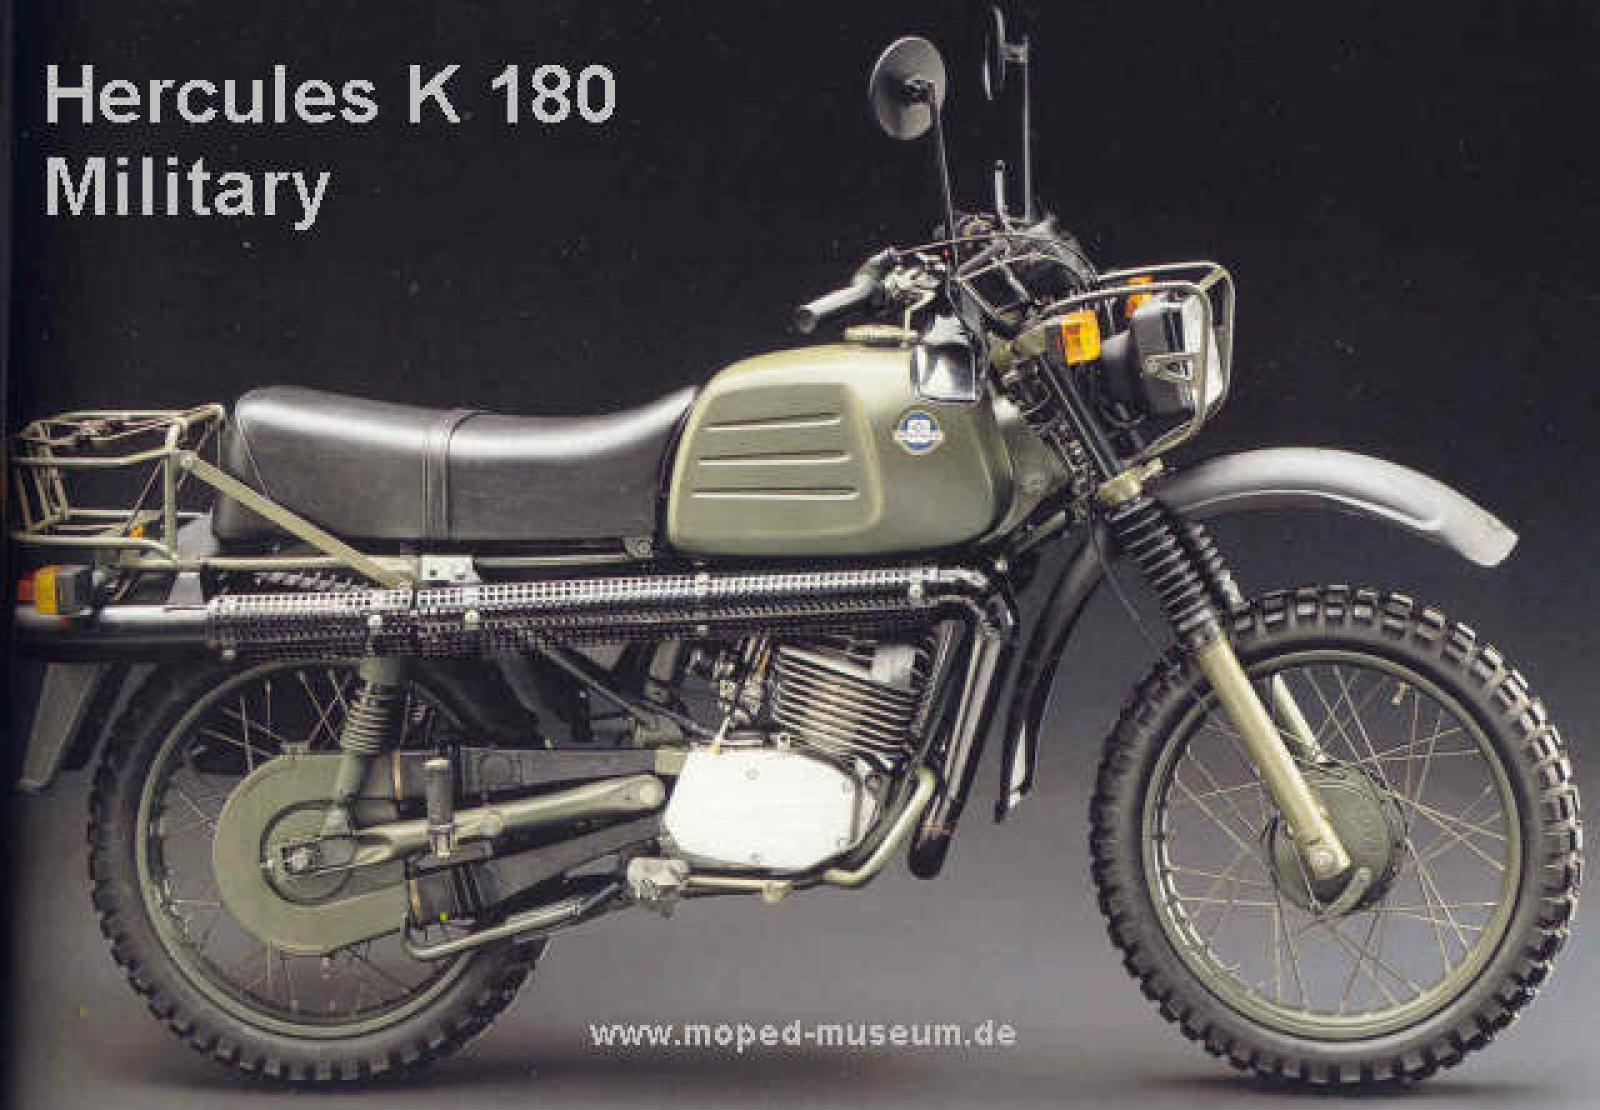 Hercules K 125 Military 1989 images #74683